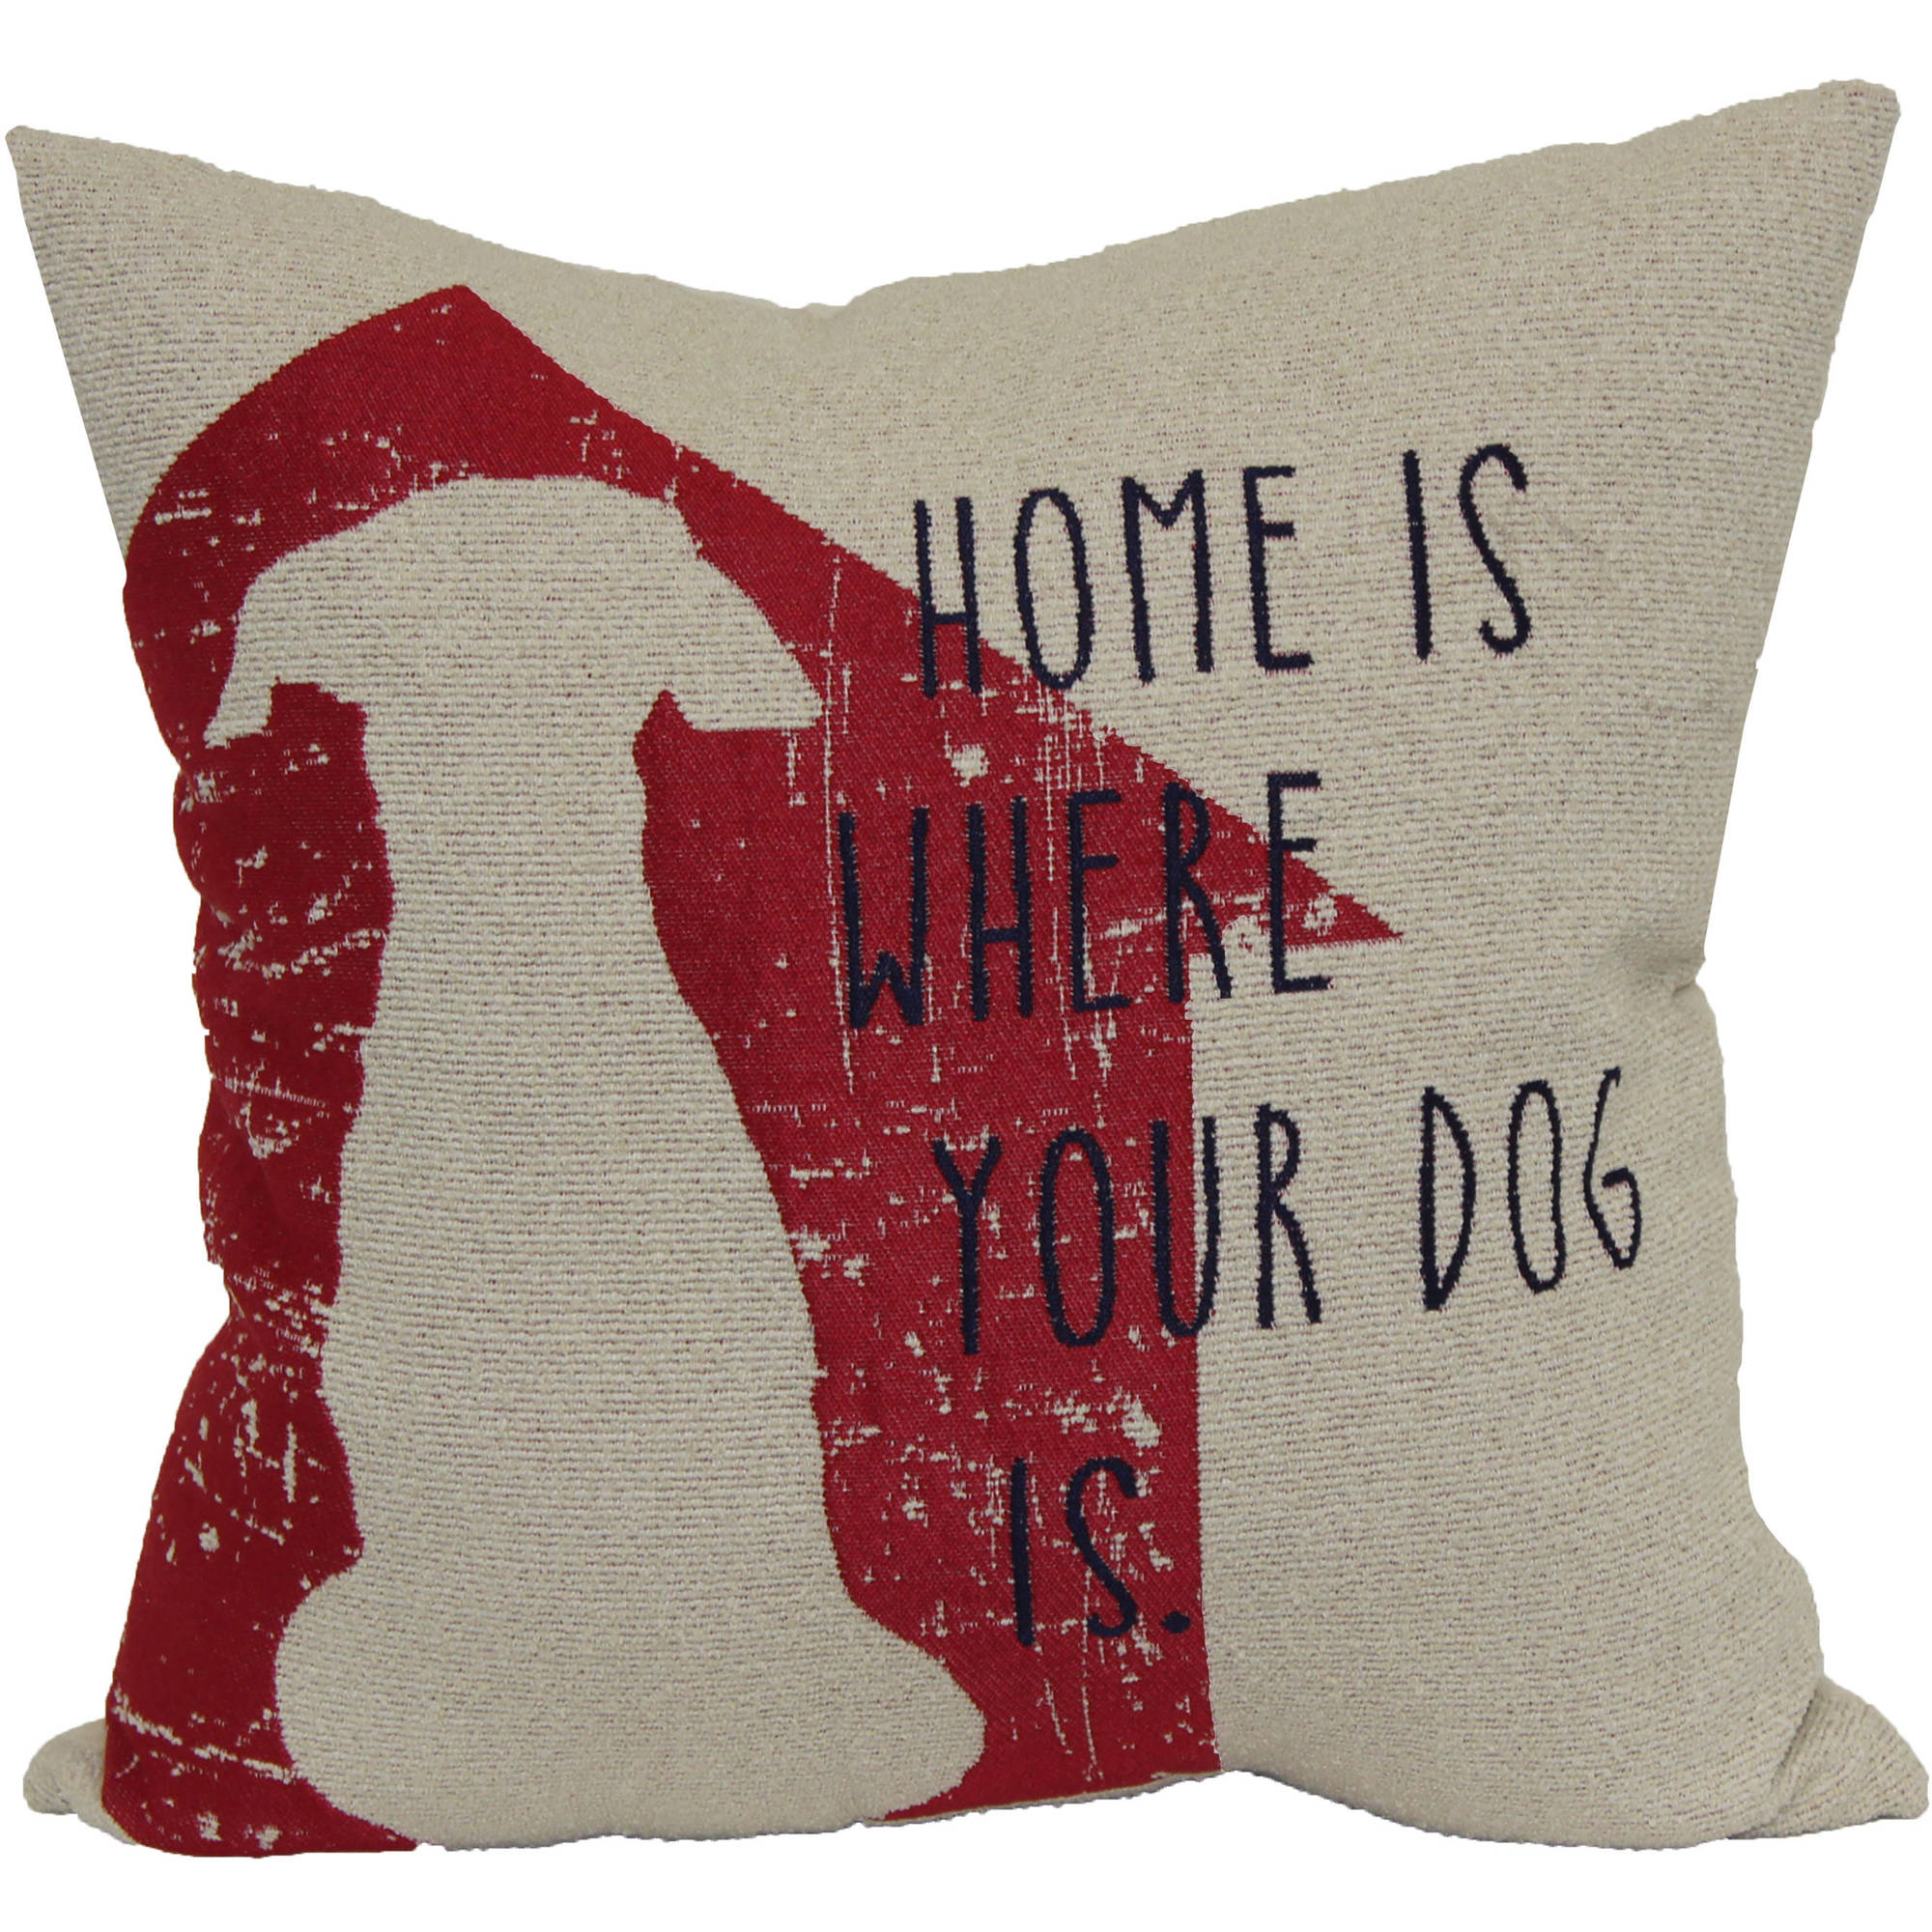 Better Homes and Gardens Decorative Pillow with Dog Words